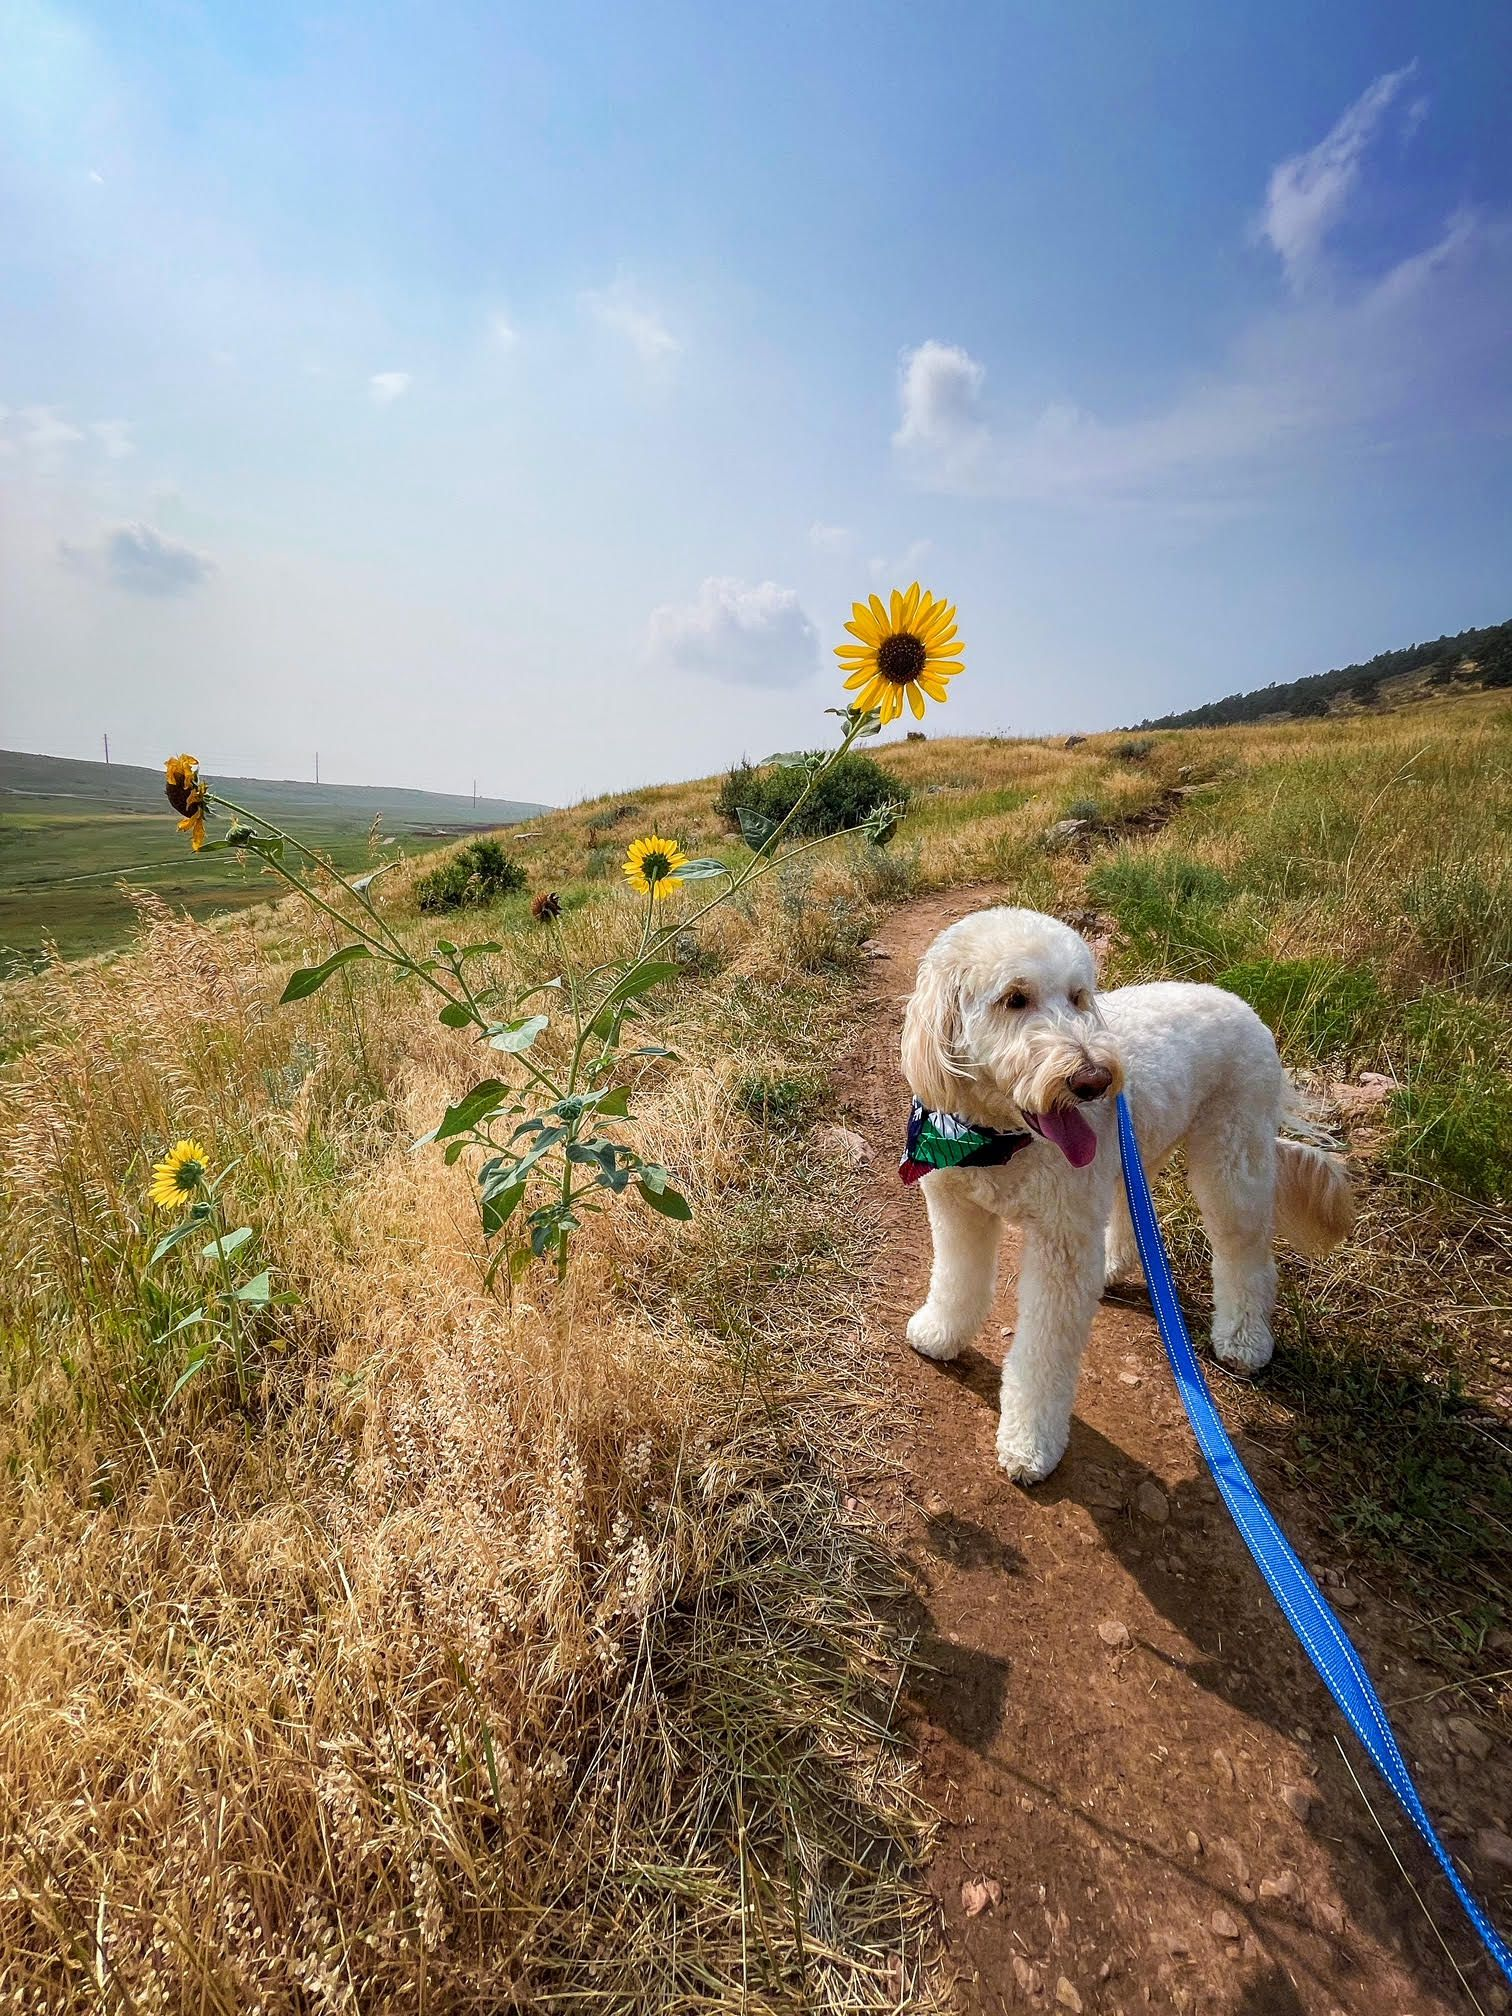 A photo of a golden doodle on a trail next to sunflowers